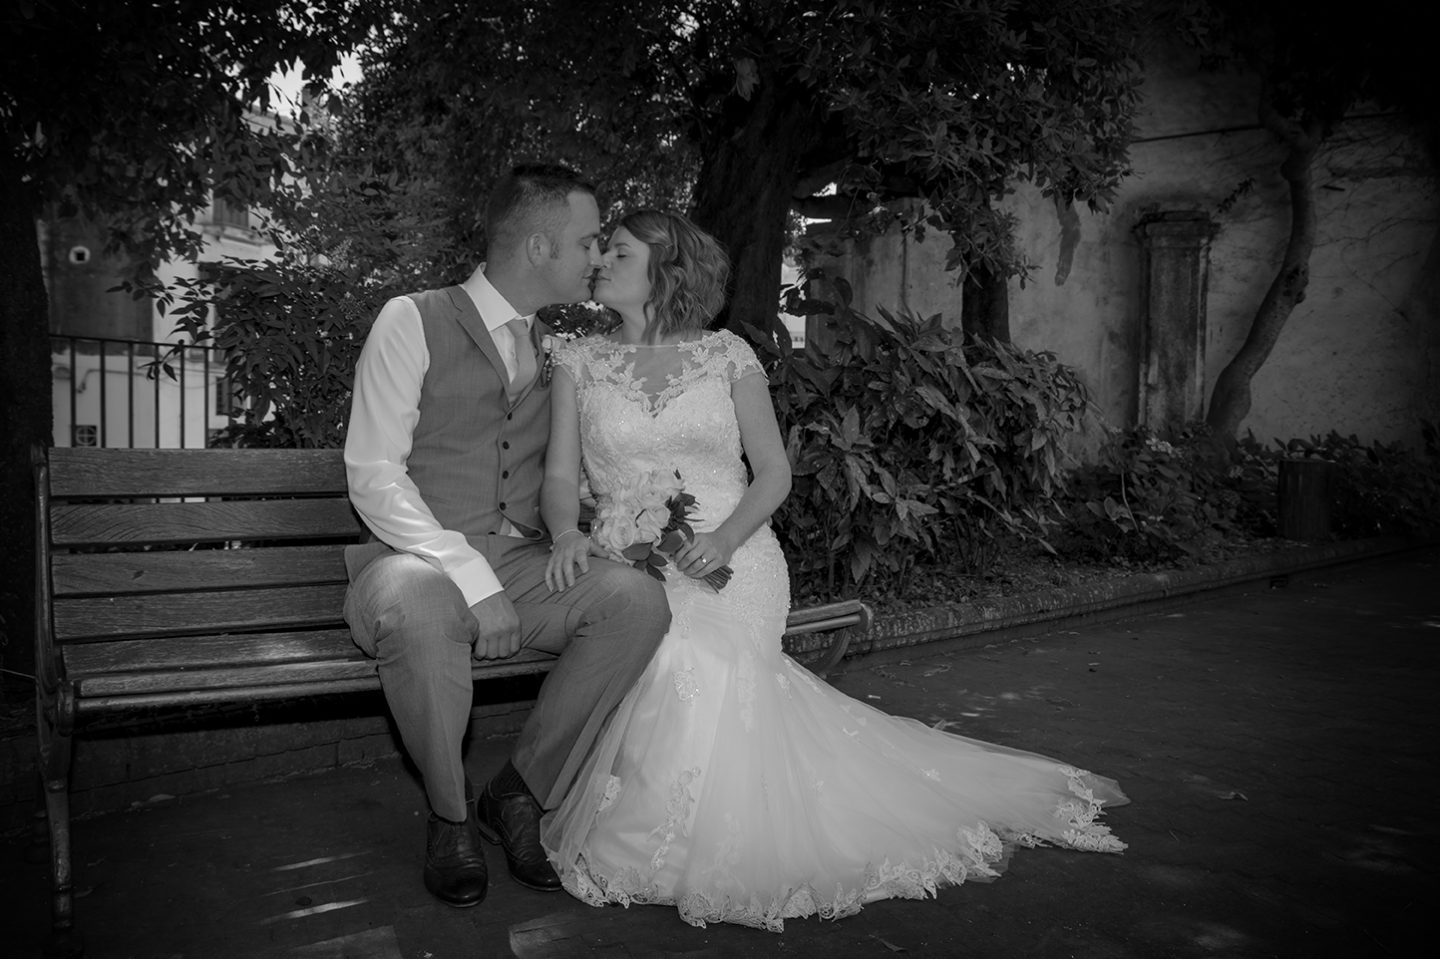 Robert & Joanne_Wedding_Maiori_Bride_Groom_Kiss_Biancoenero